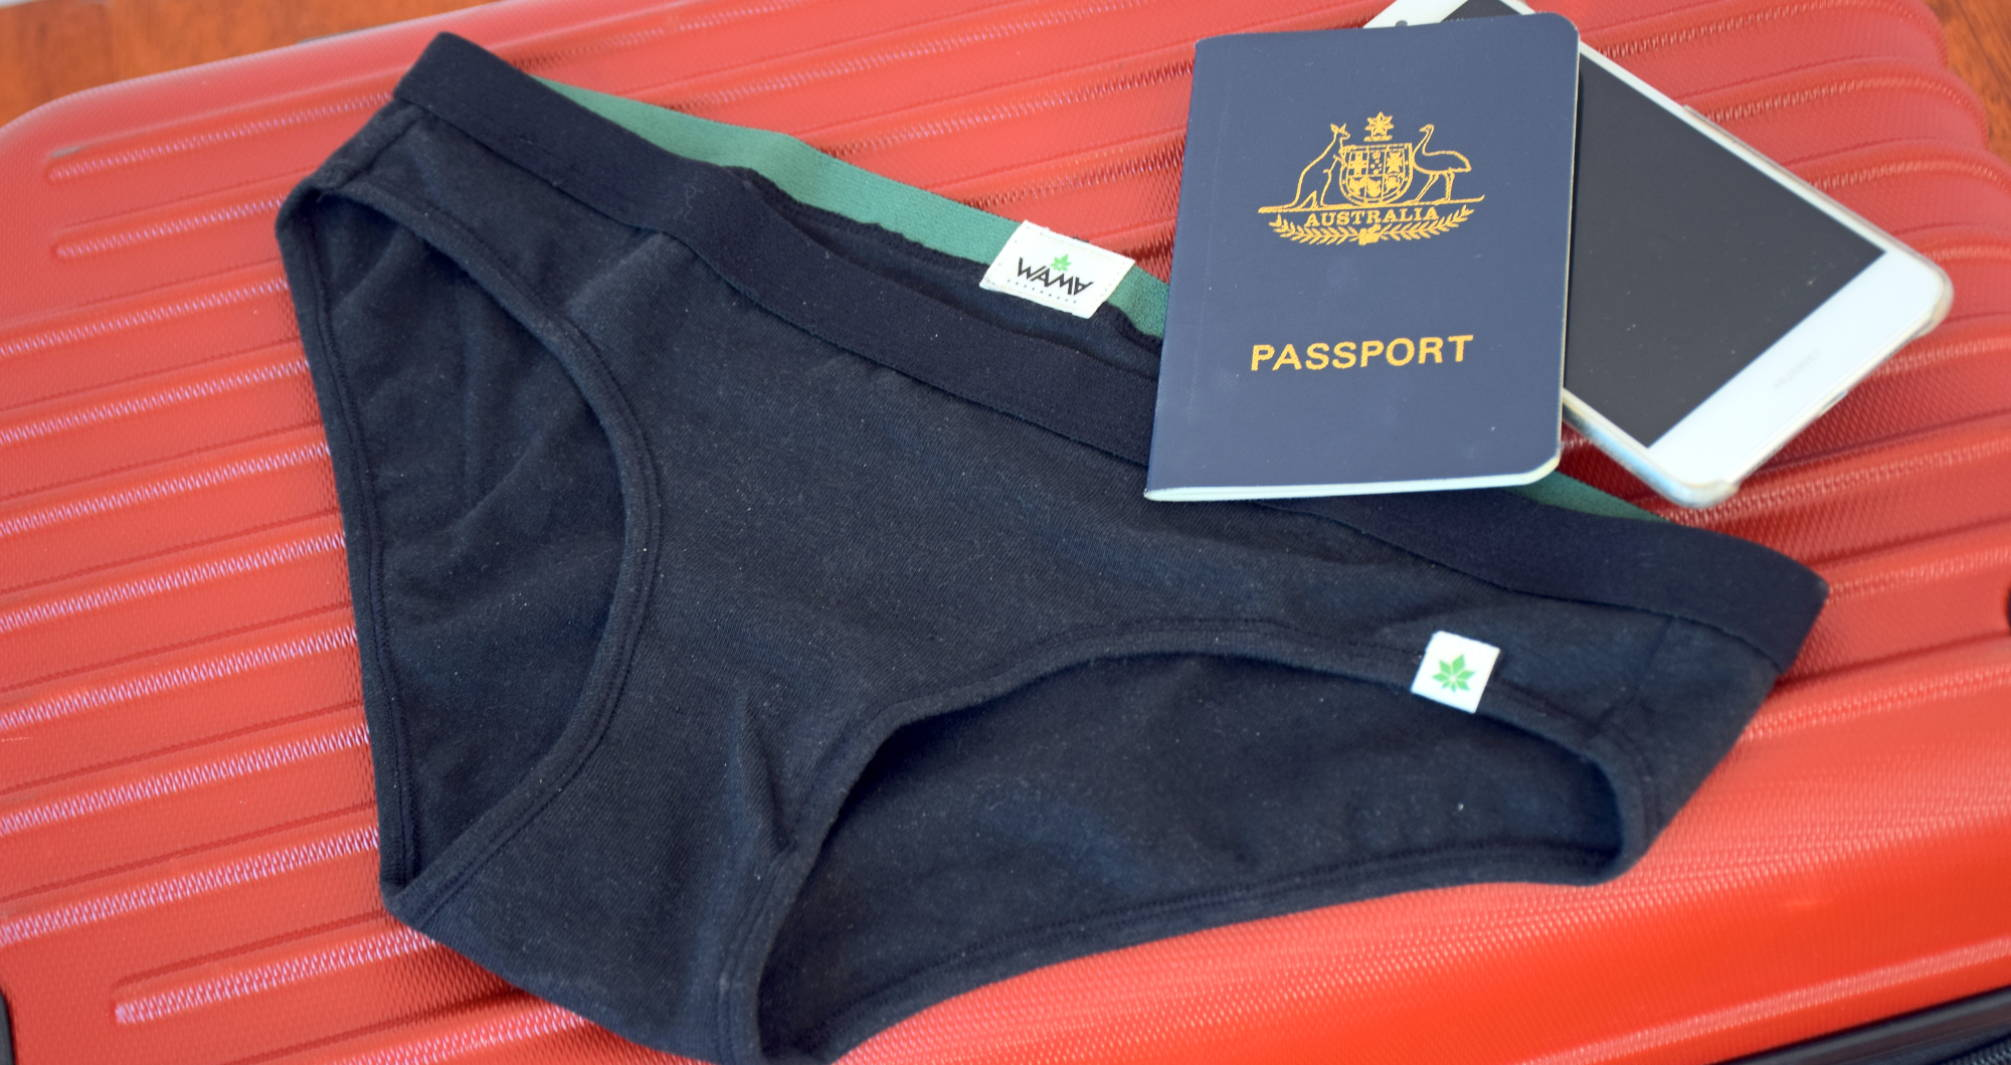 A pair of WAMA hemp travel underwear sits atop a red suitcase with a passport and cell phone.